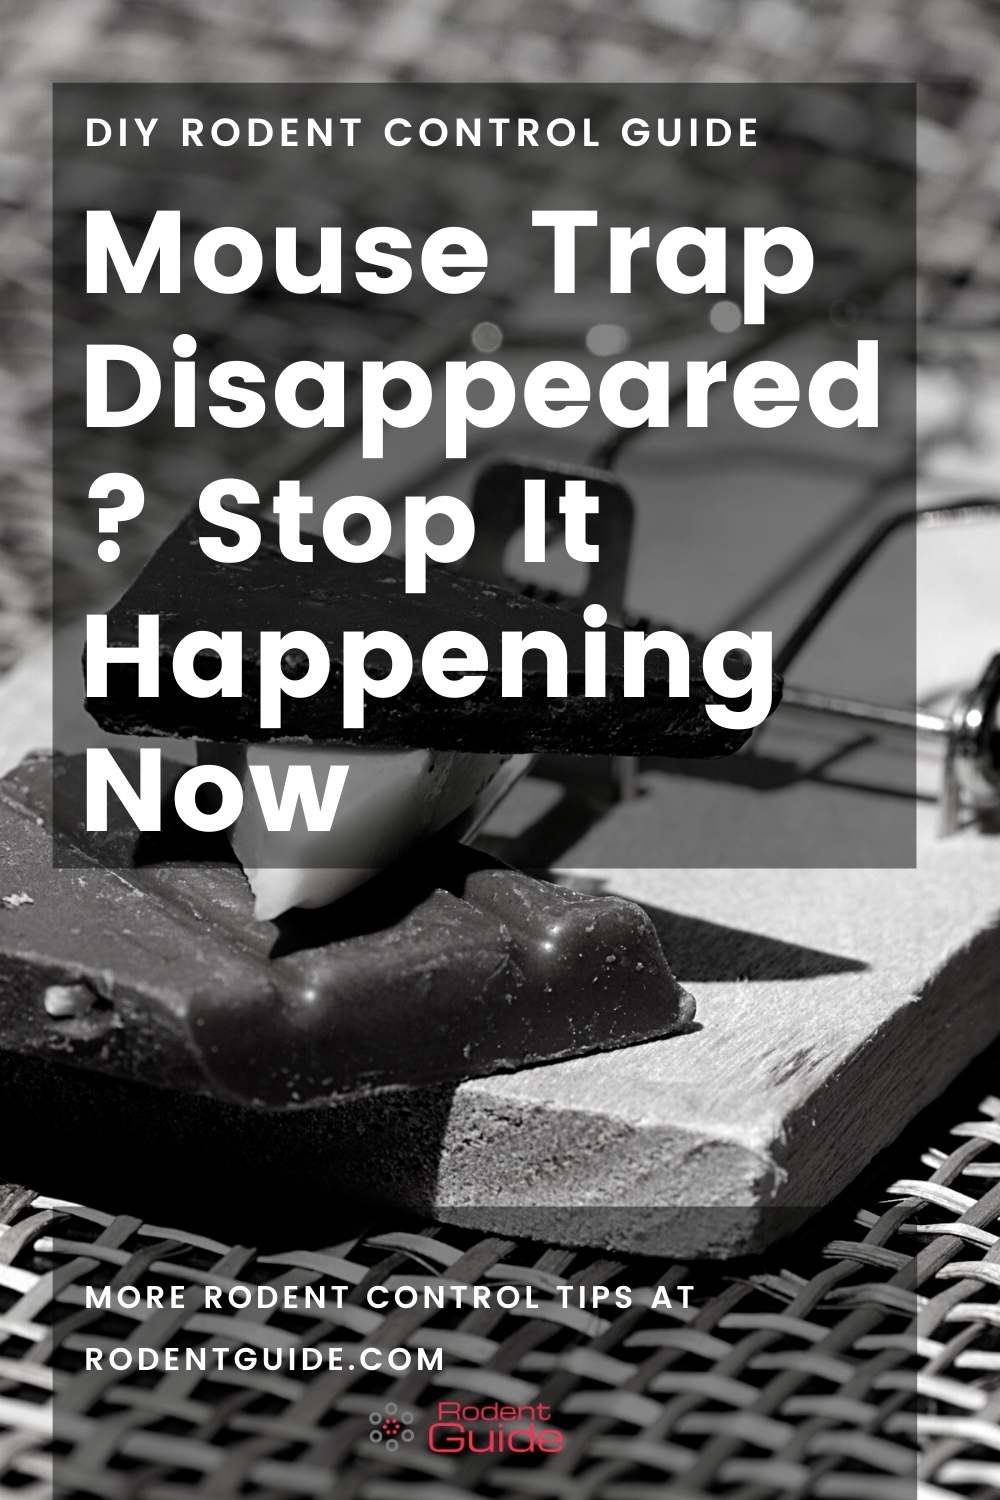 Mouse Trap Disappeared